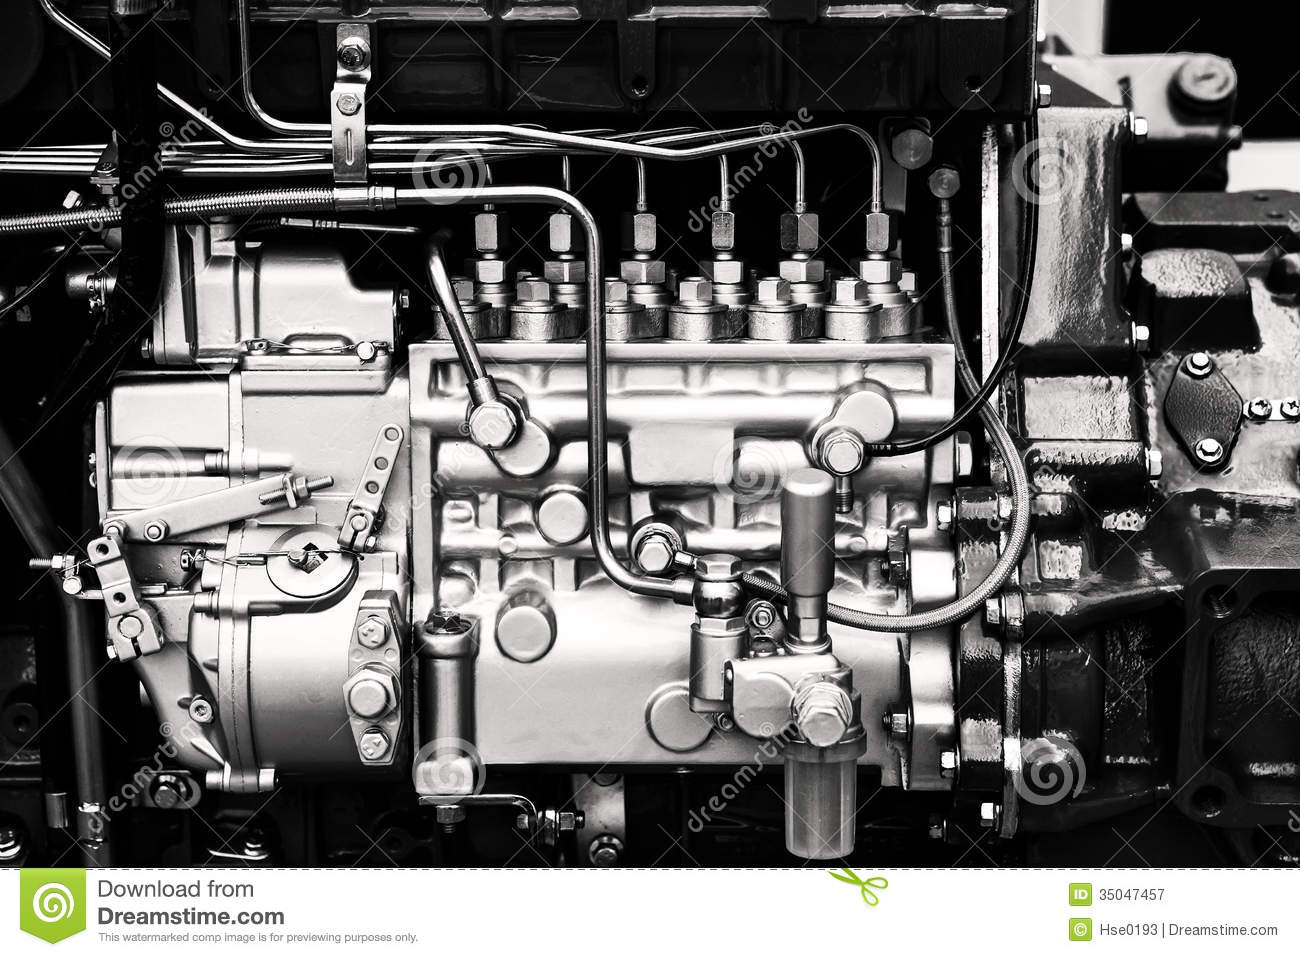 Forged Parts Black And White : Car engine stock image of parts close details